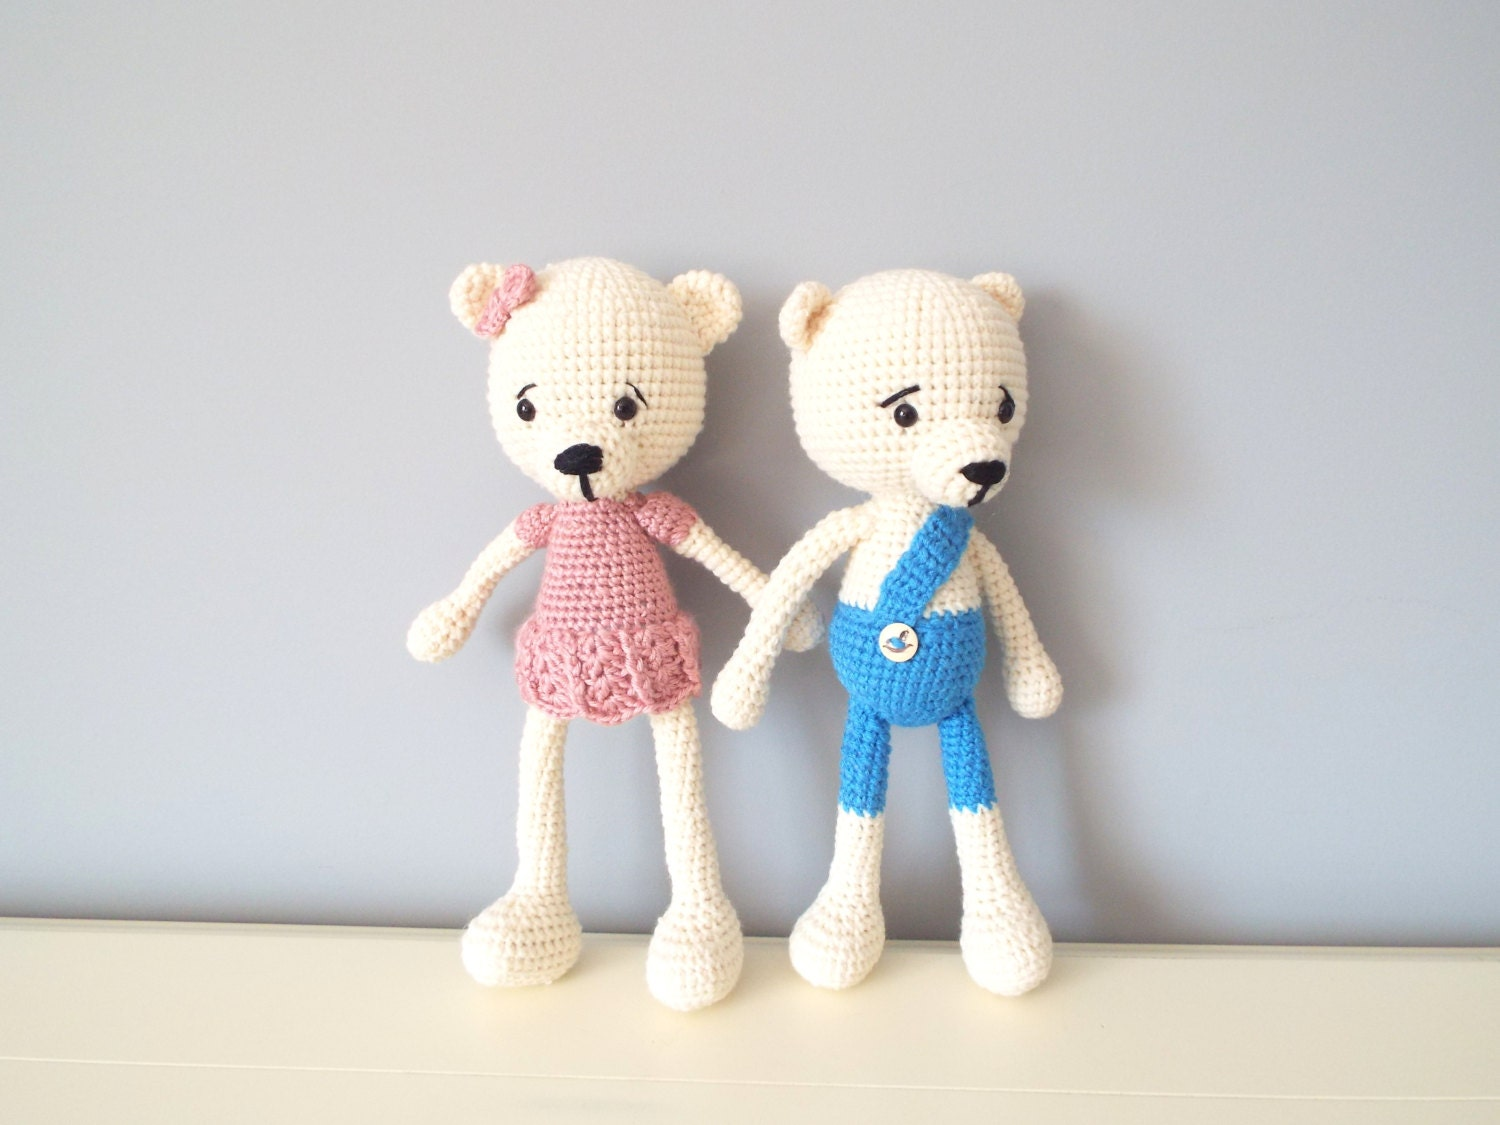 Amigurumi Baby Shower Bears : Crochet knitted Teddy bear Girls Amigurumi Gift ideas Baby ...